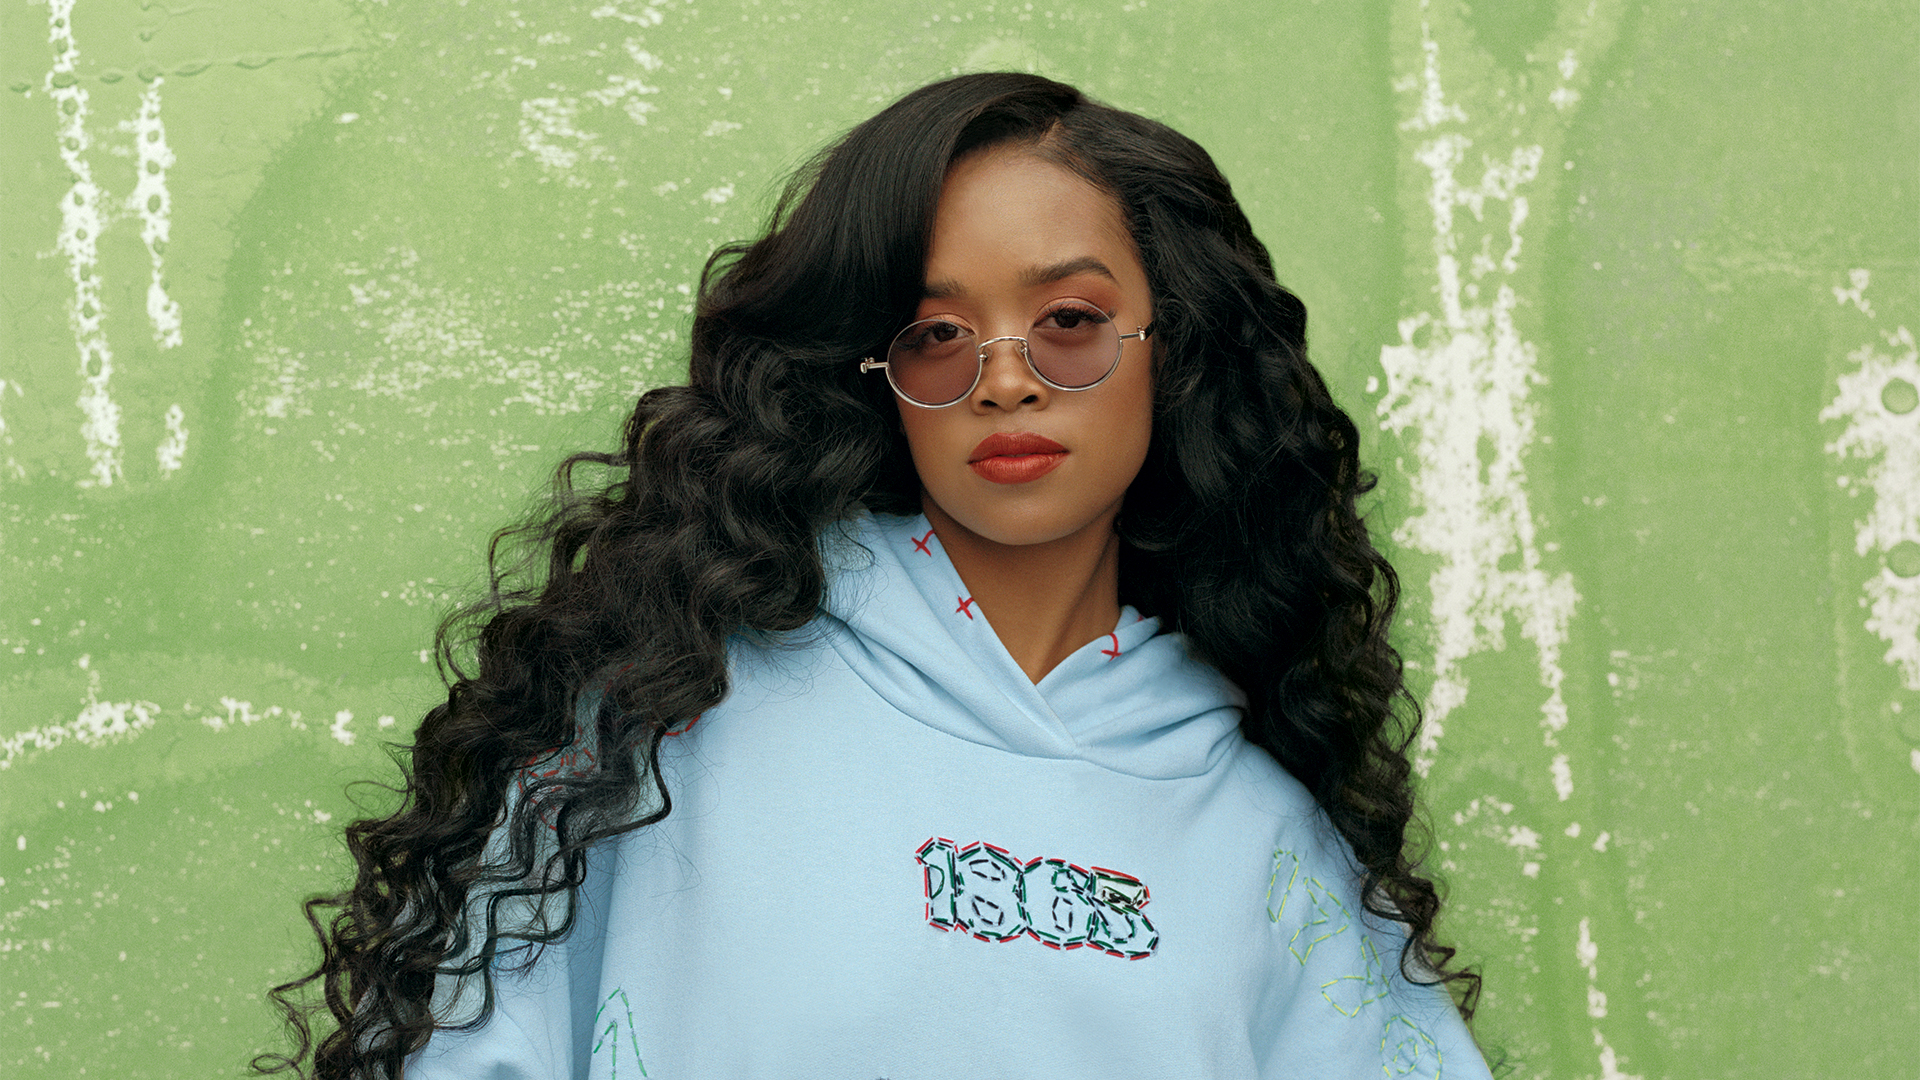 """H.E.R. to Make Acting Debut in Blitz Bazawule's Film Adaptation of """"The Color Purple"""""""